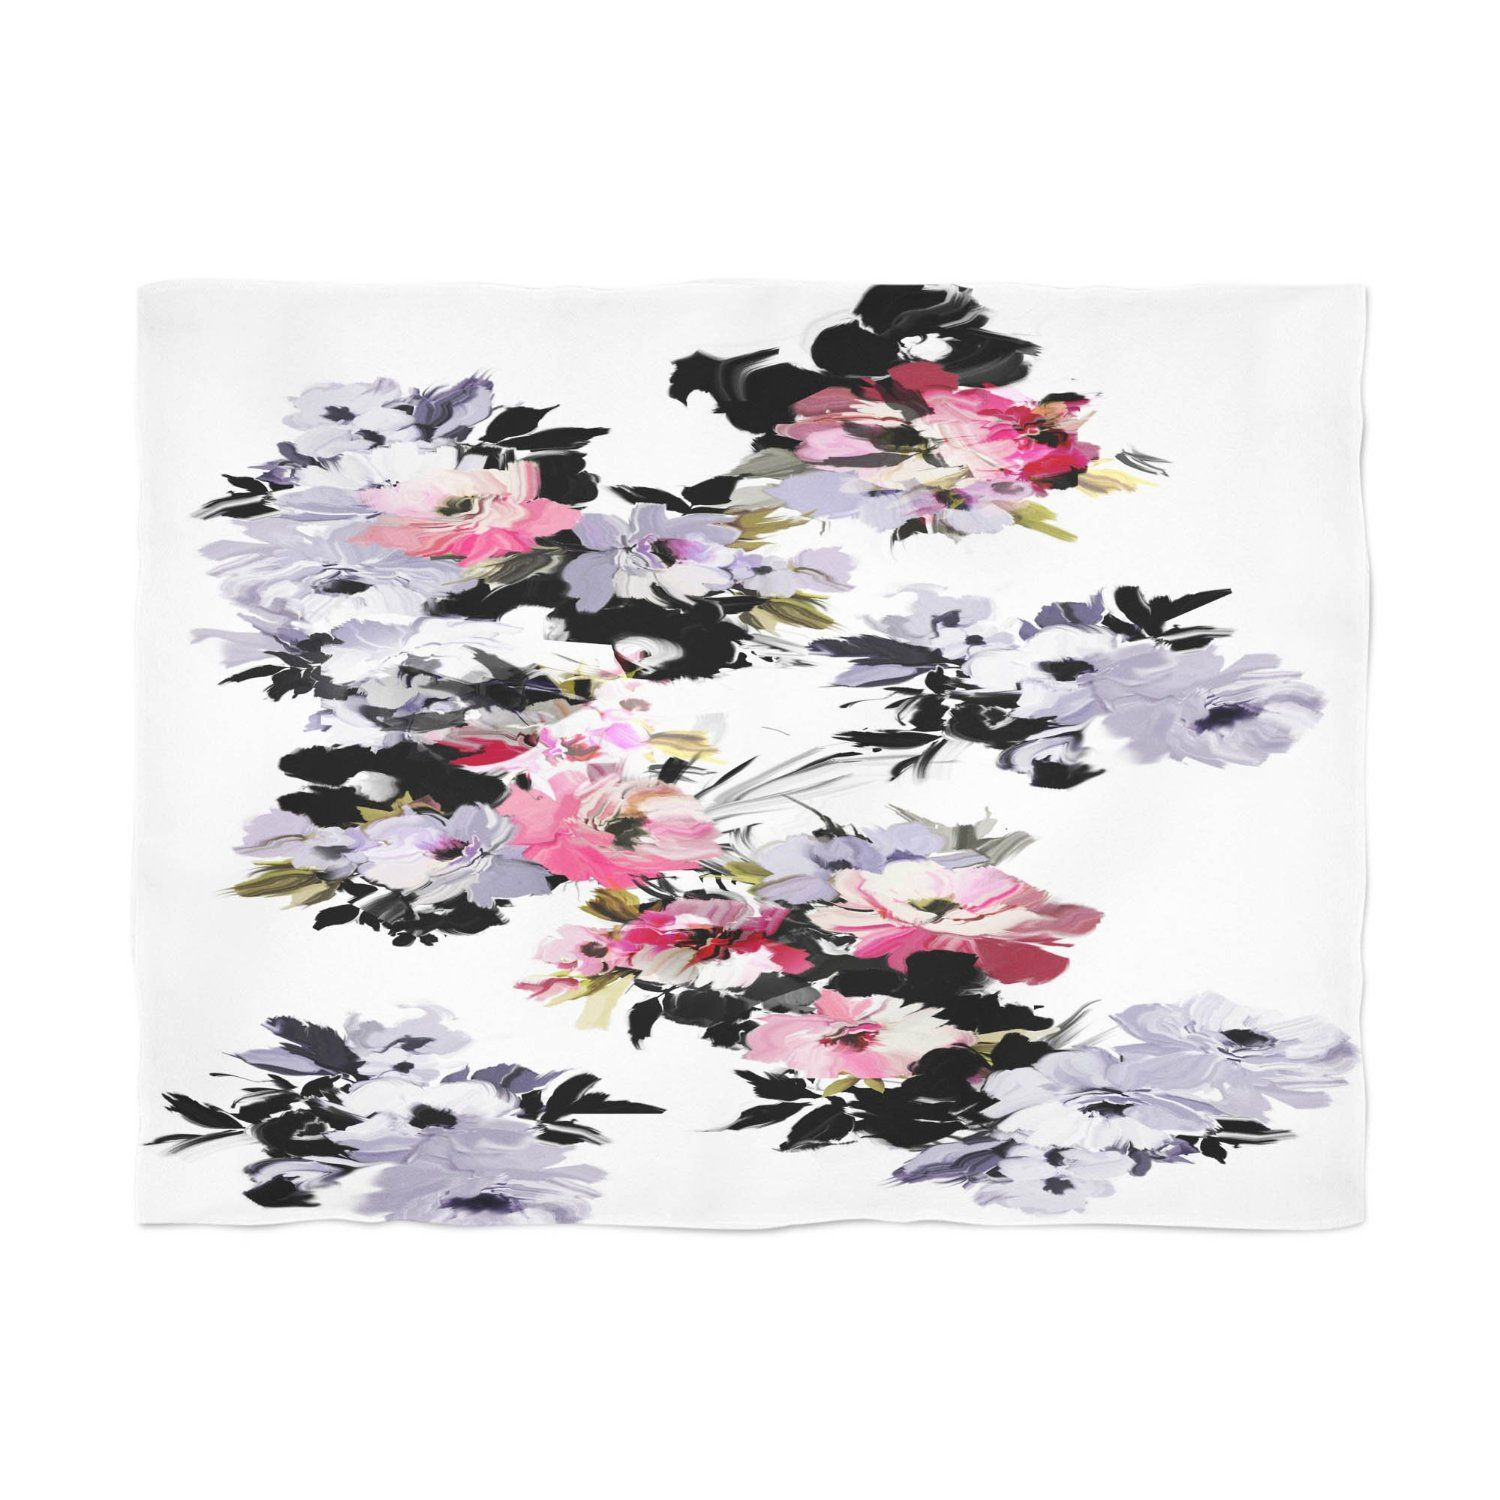 Amazon.com: Gillham Studios Colorful Watercolor Floral Comfortable Microfiber Fleece Throw Blanket (60x50 inch) Bright Daisies and Roses: Home & Kitchen